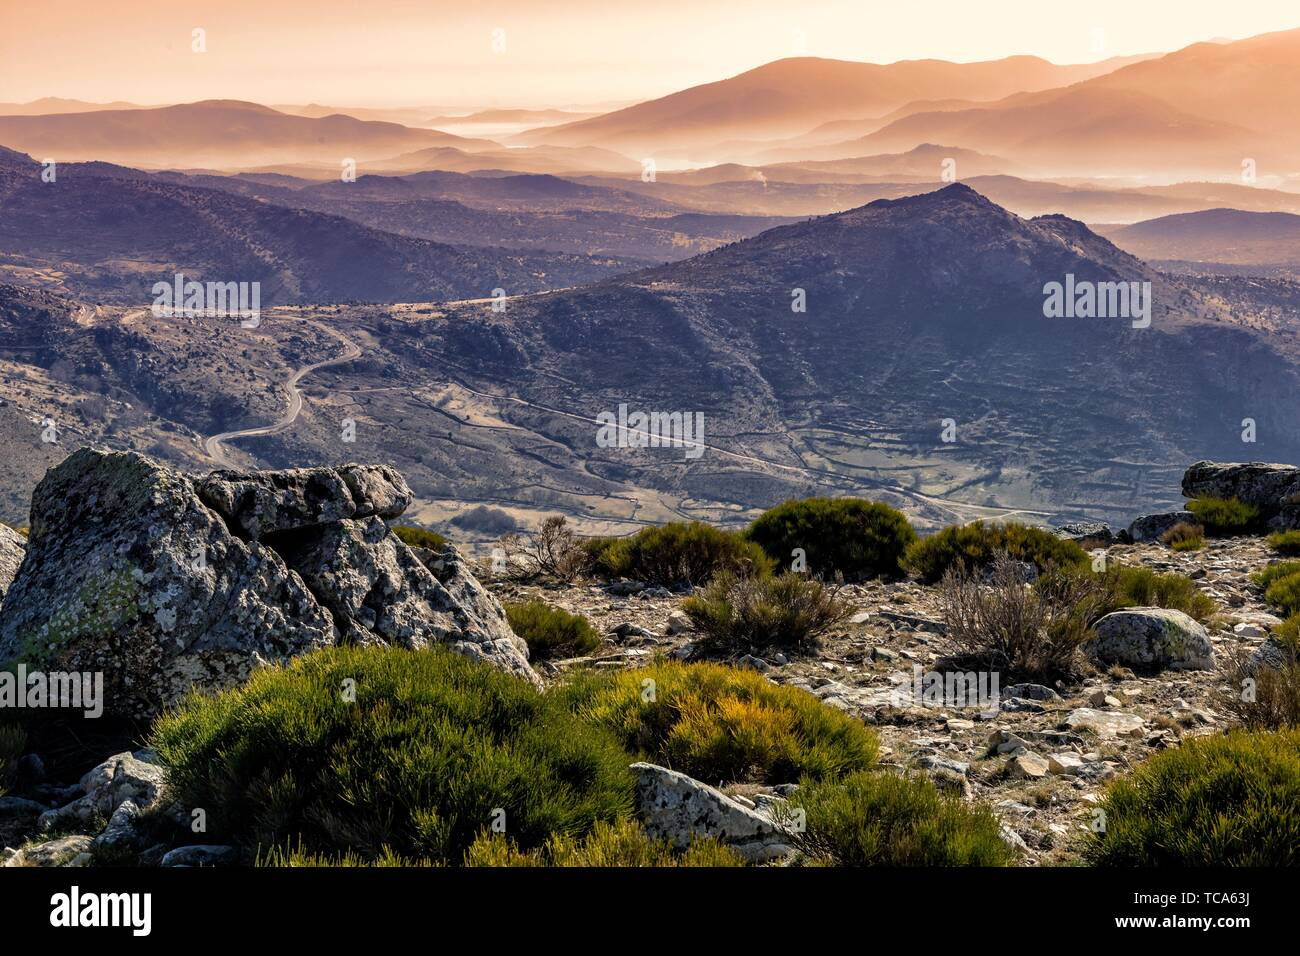 Jew hill in Sierra Paramera and Sierra de Gredos on the background. Avila. Spain. Europe. - Stock Image